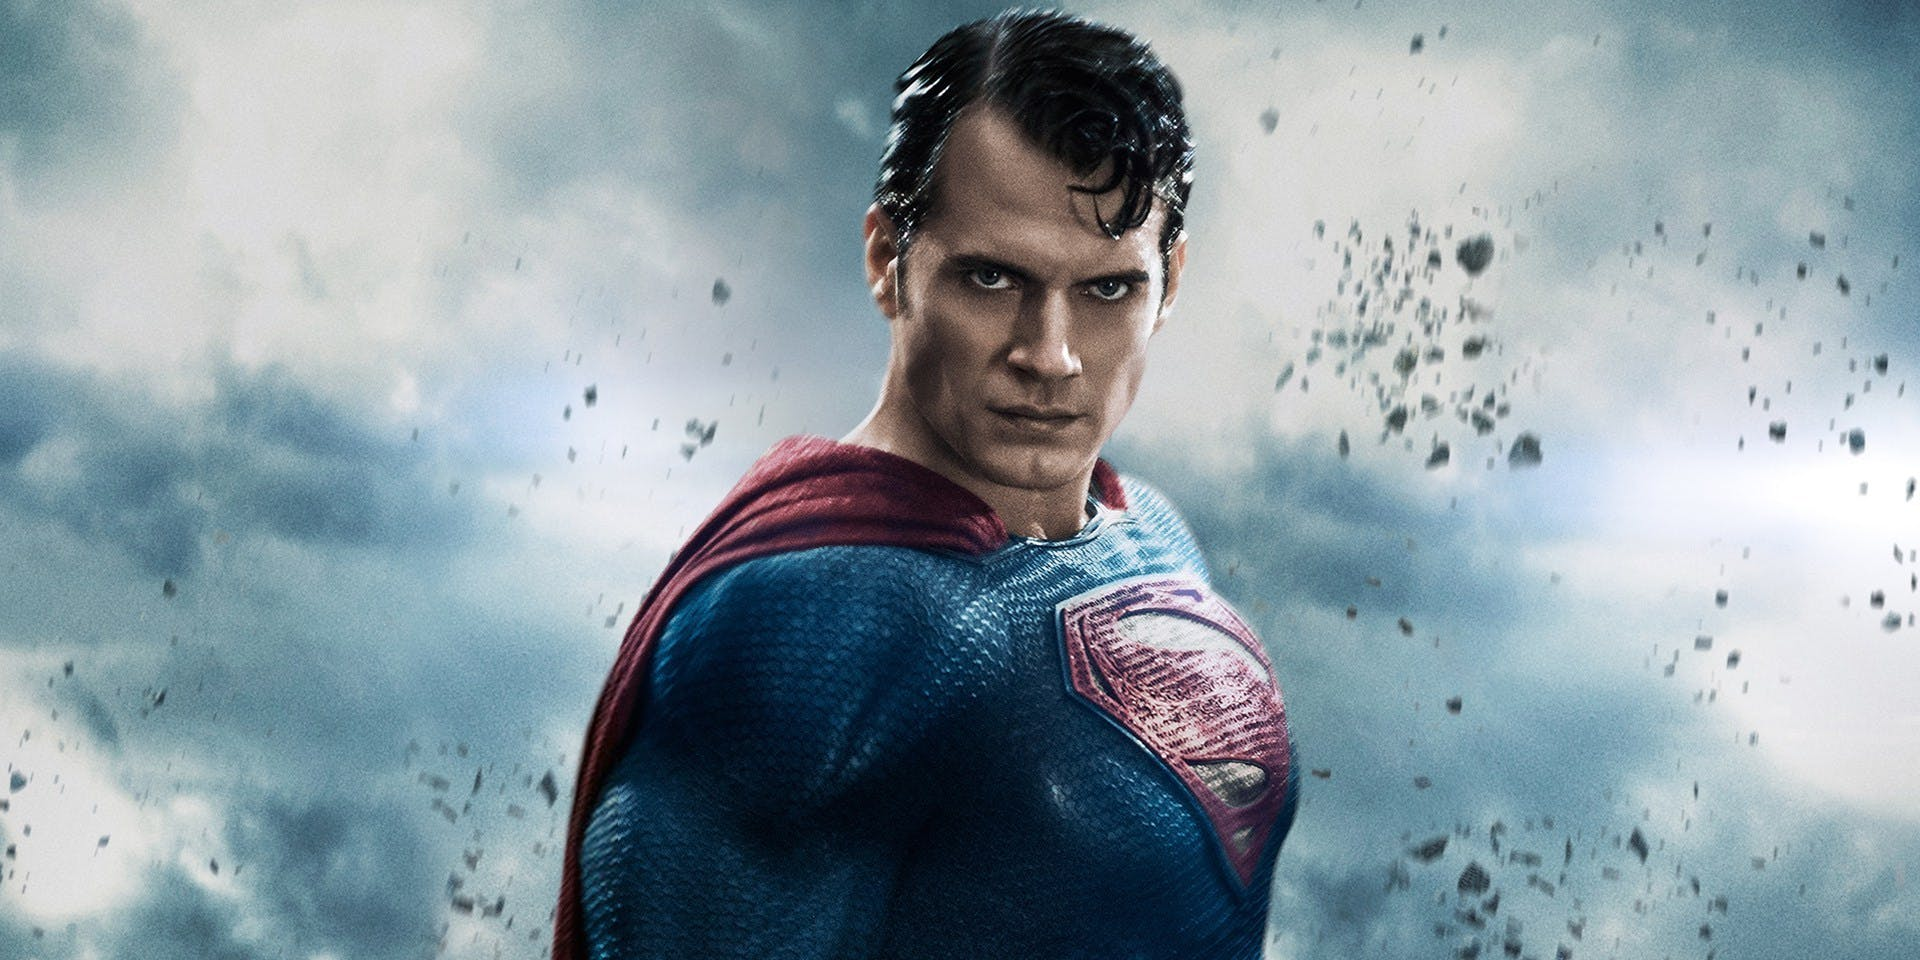 Download The Image Of The Evil Superman With Black Suit: Henry Cavill Looks To Be Getting In Shape For His Next